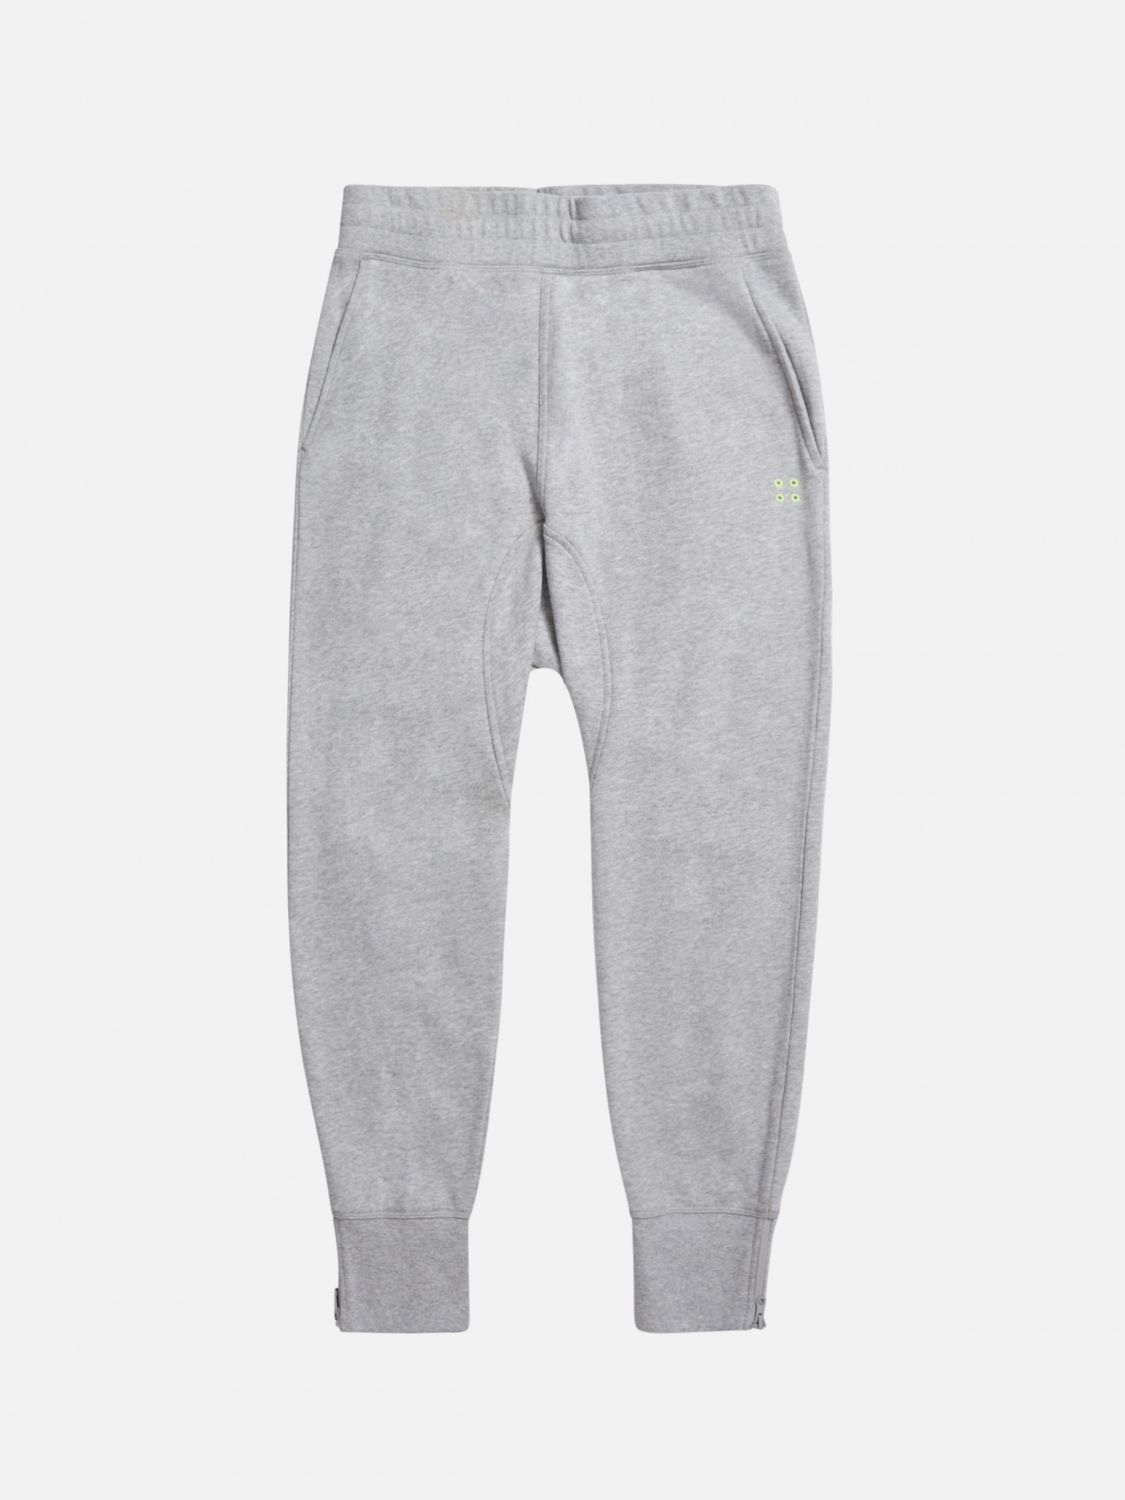 ace pant - heather gray